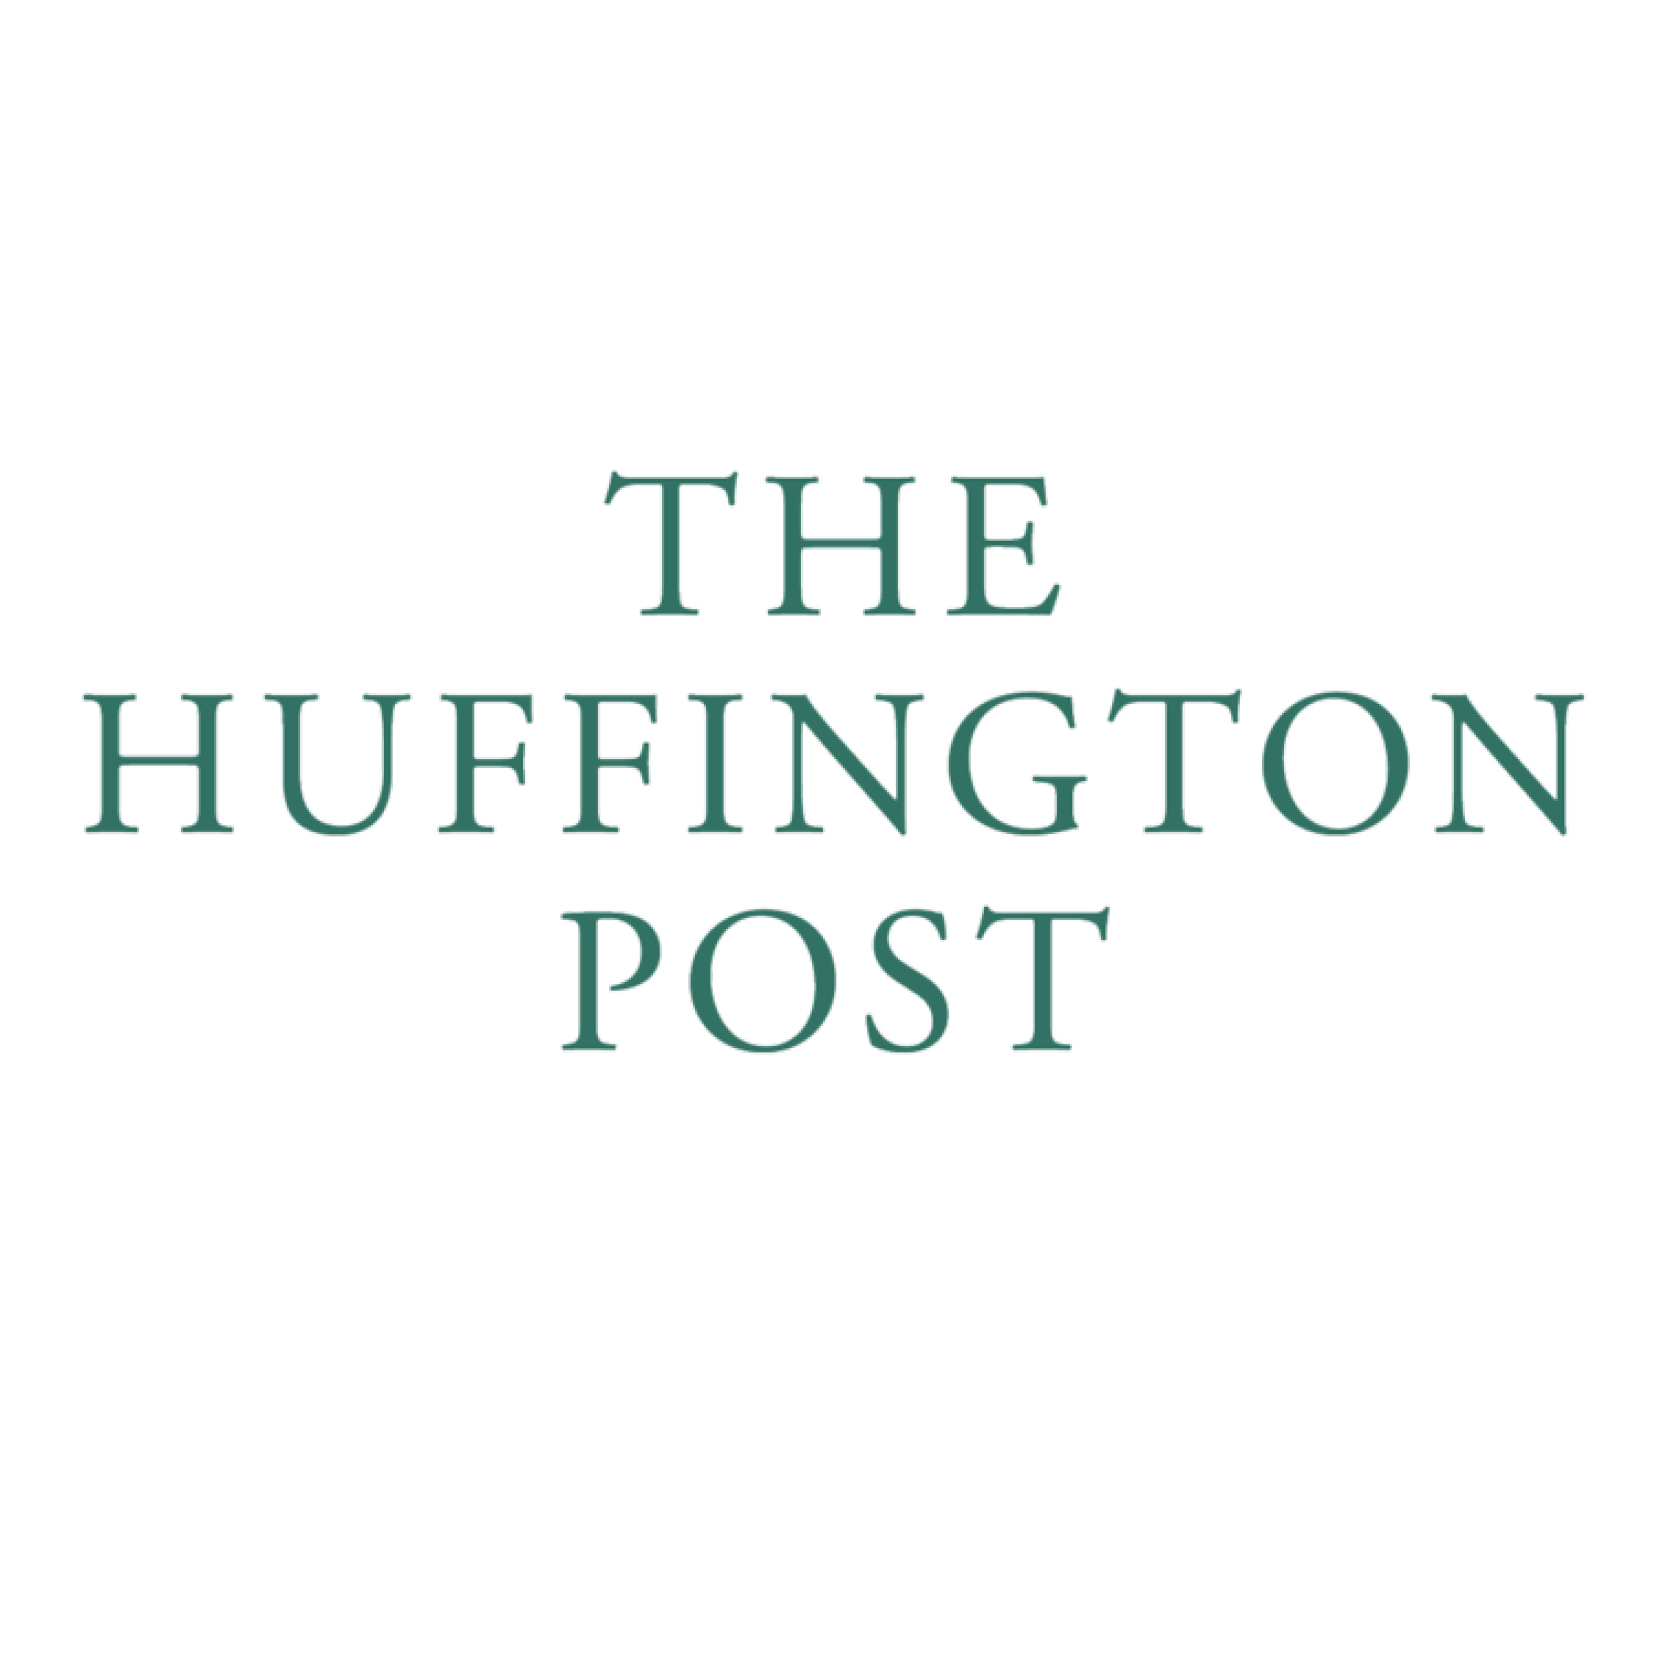 huffington-post-logo-miranda-nahmias-featured